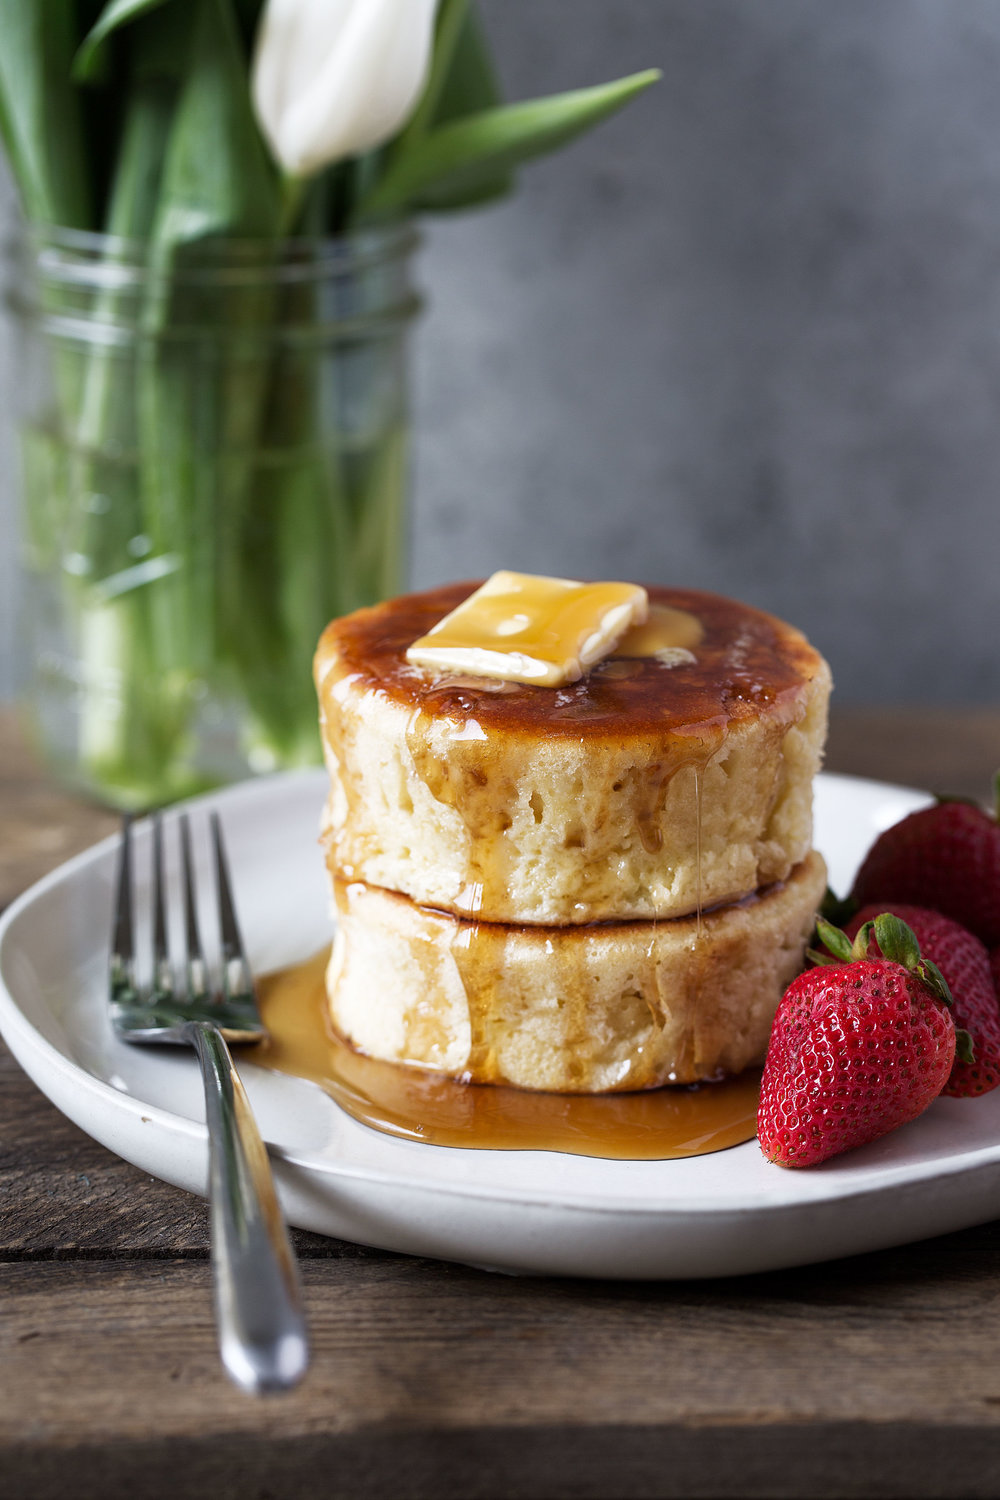 Japanese-style Soufflé Pancakes recipe from cooking with cocktail rings